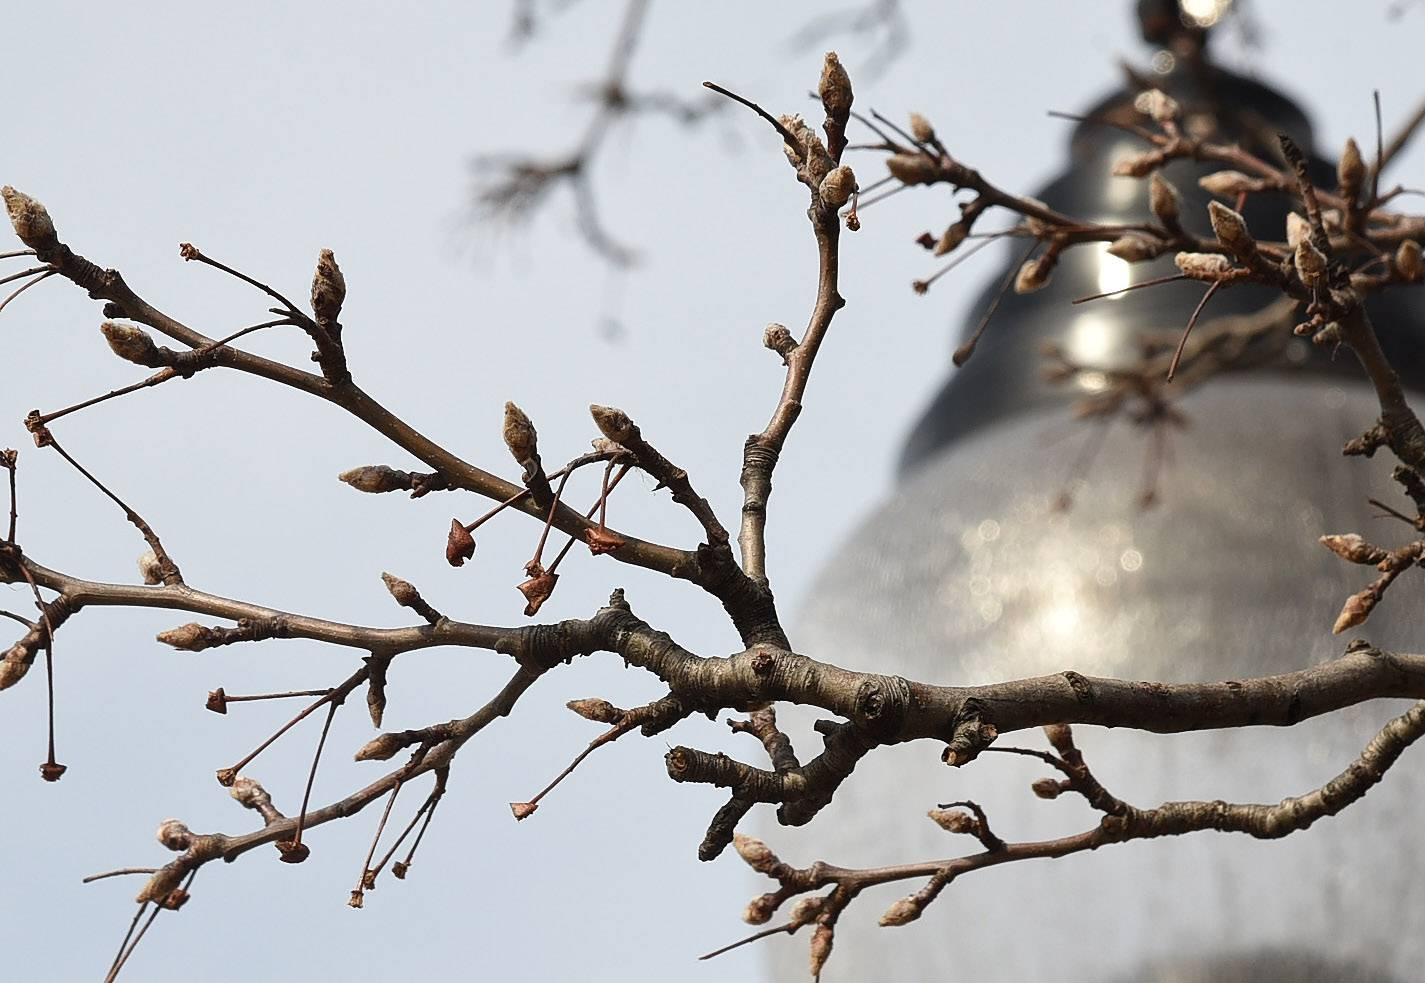 Leaf buds were already starting to show Monday on a tree in Arlington Heights as the suburbs saw another day of record warm temperatures. An expert at the Morton Arboretum in Lisle said this week's weather shouldn't have much long-term impact on the health of suburban trees.